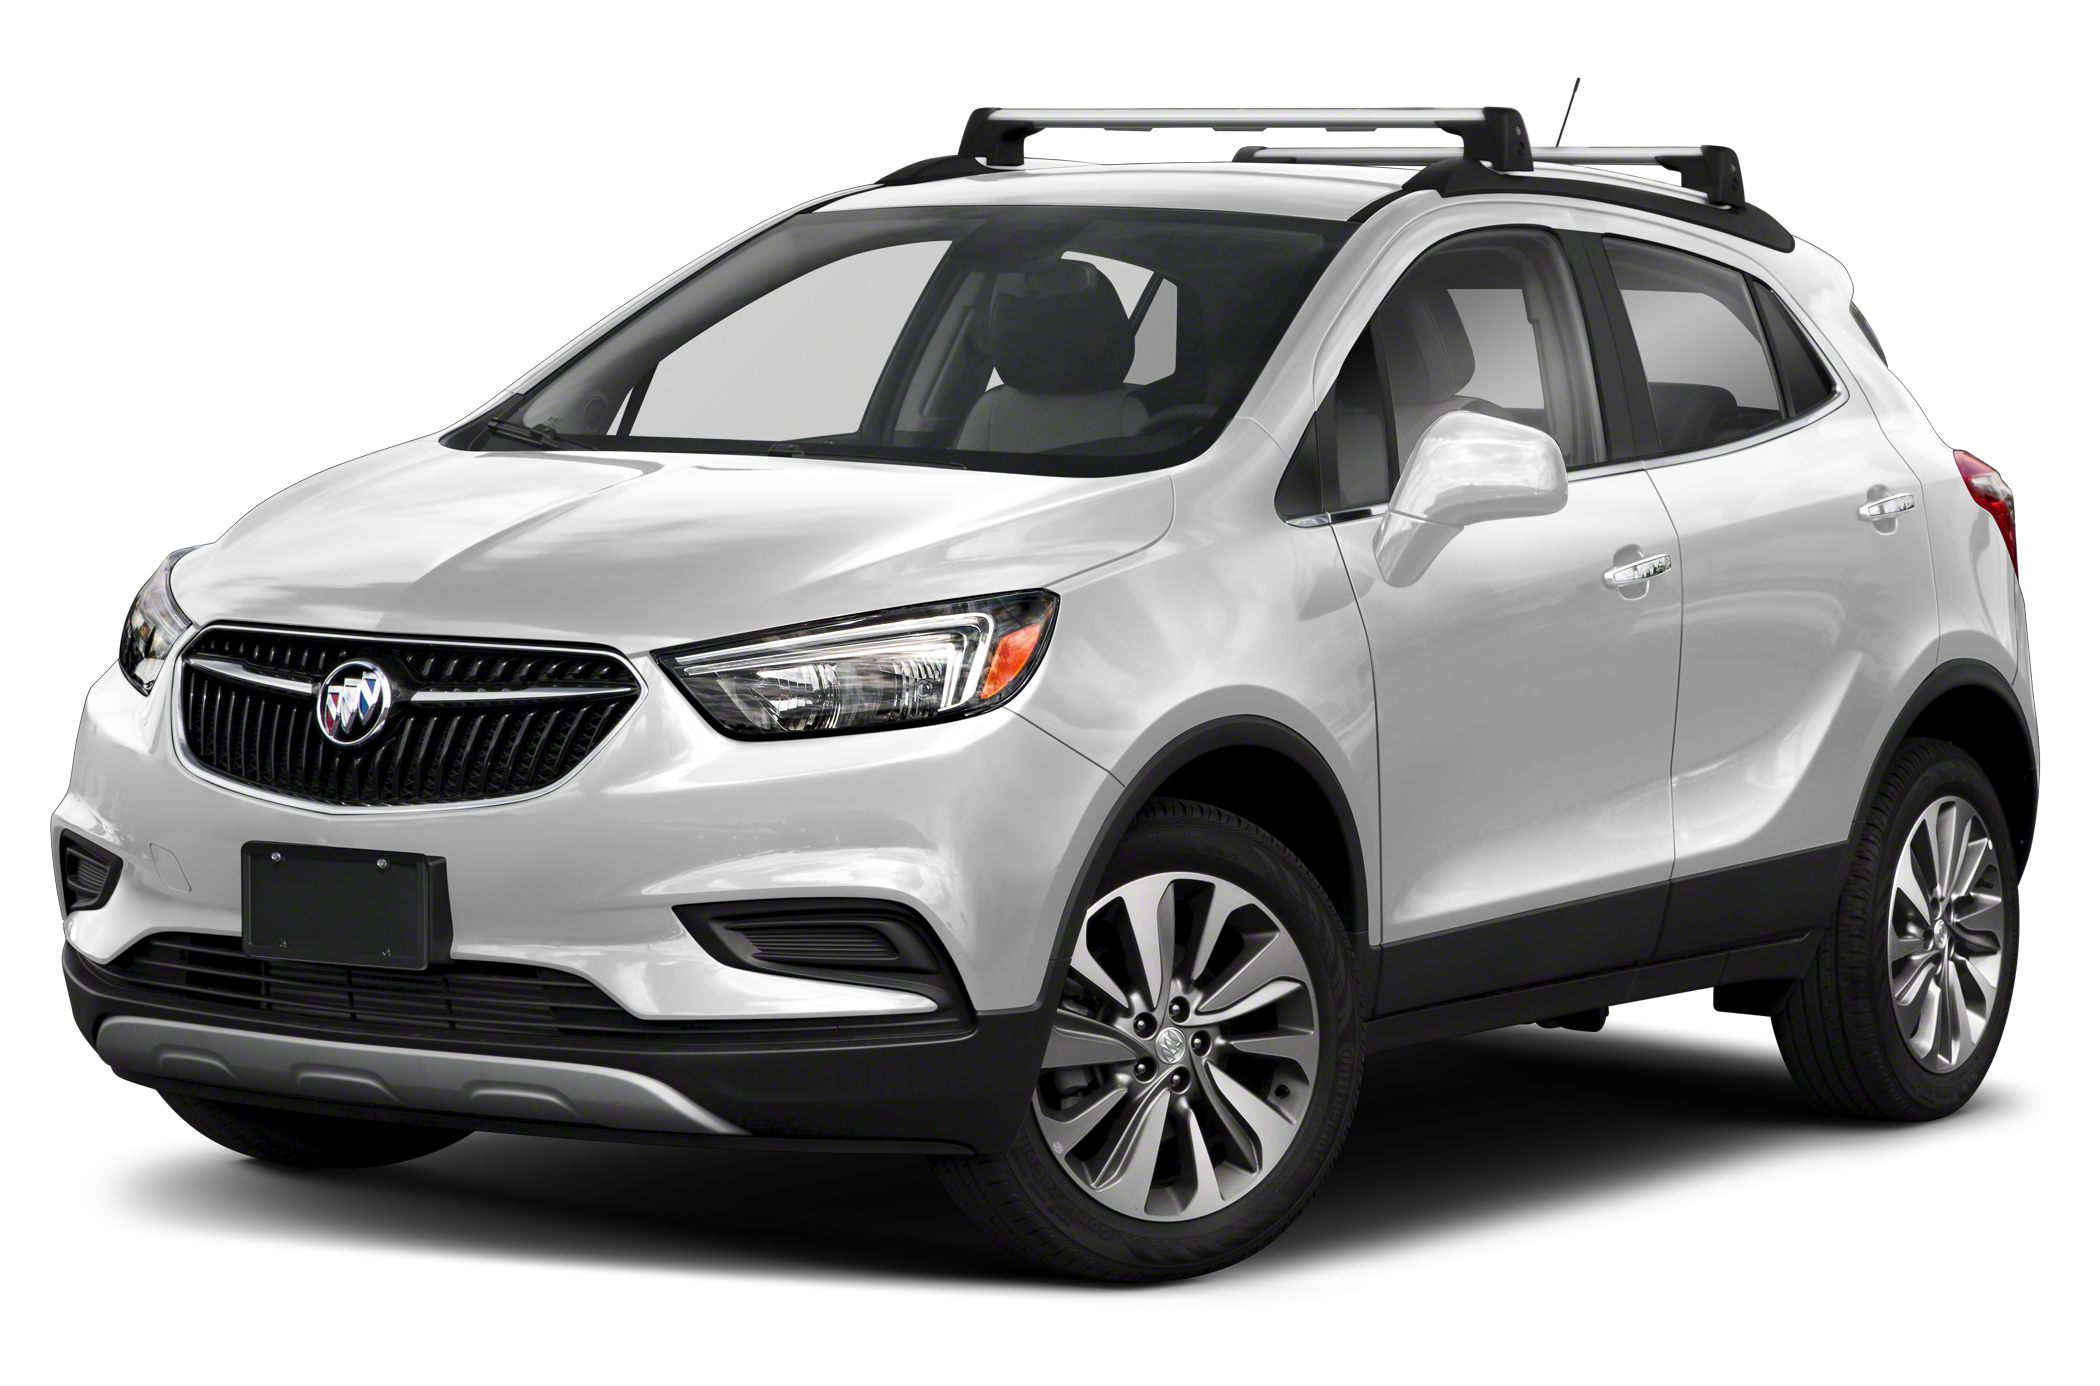 2021 Buick Encore Preferred All-Wheel Drive Specs And Prices 2021 Buick Encore Reviews, Preferred, Price